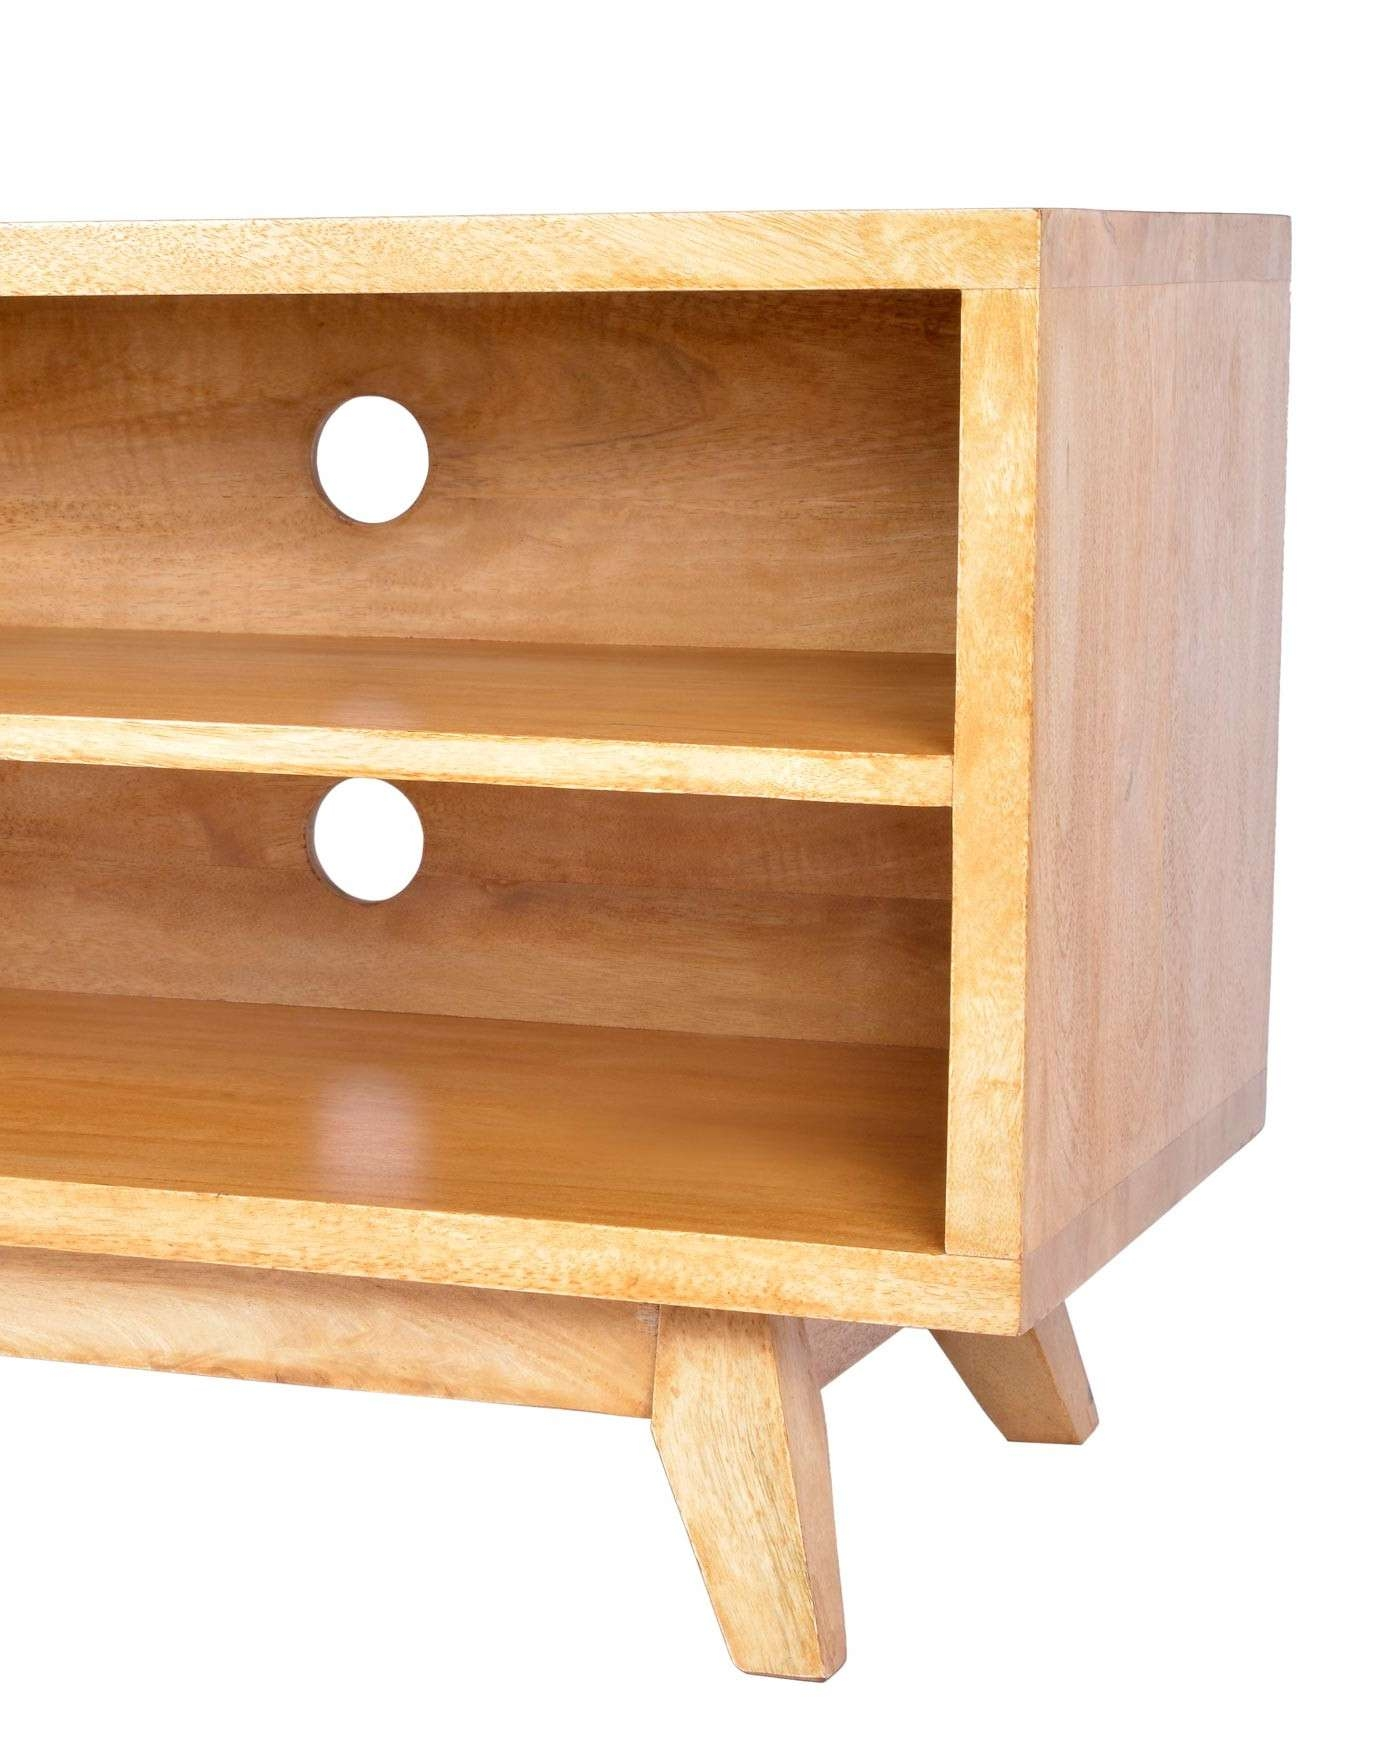 Tv : Mango Wood Tv Stands Beguiling' Beautiful Next Mango Wood Tv Throughout Mango Wood Tv Cabinets (View 20 of 20)